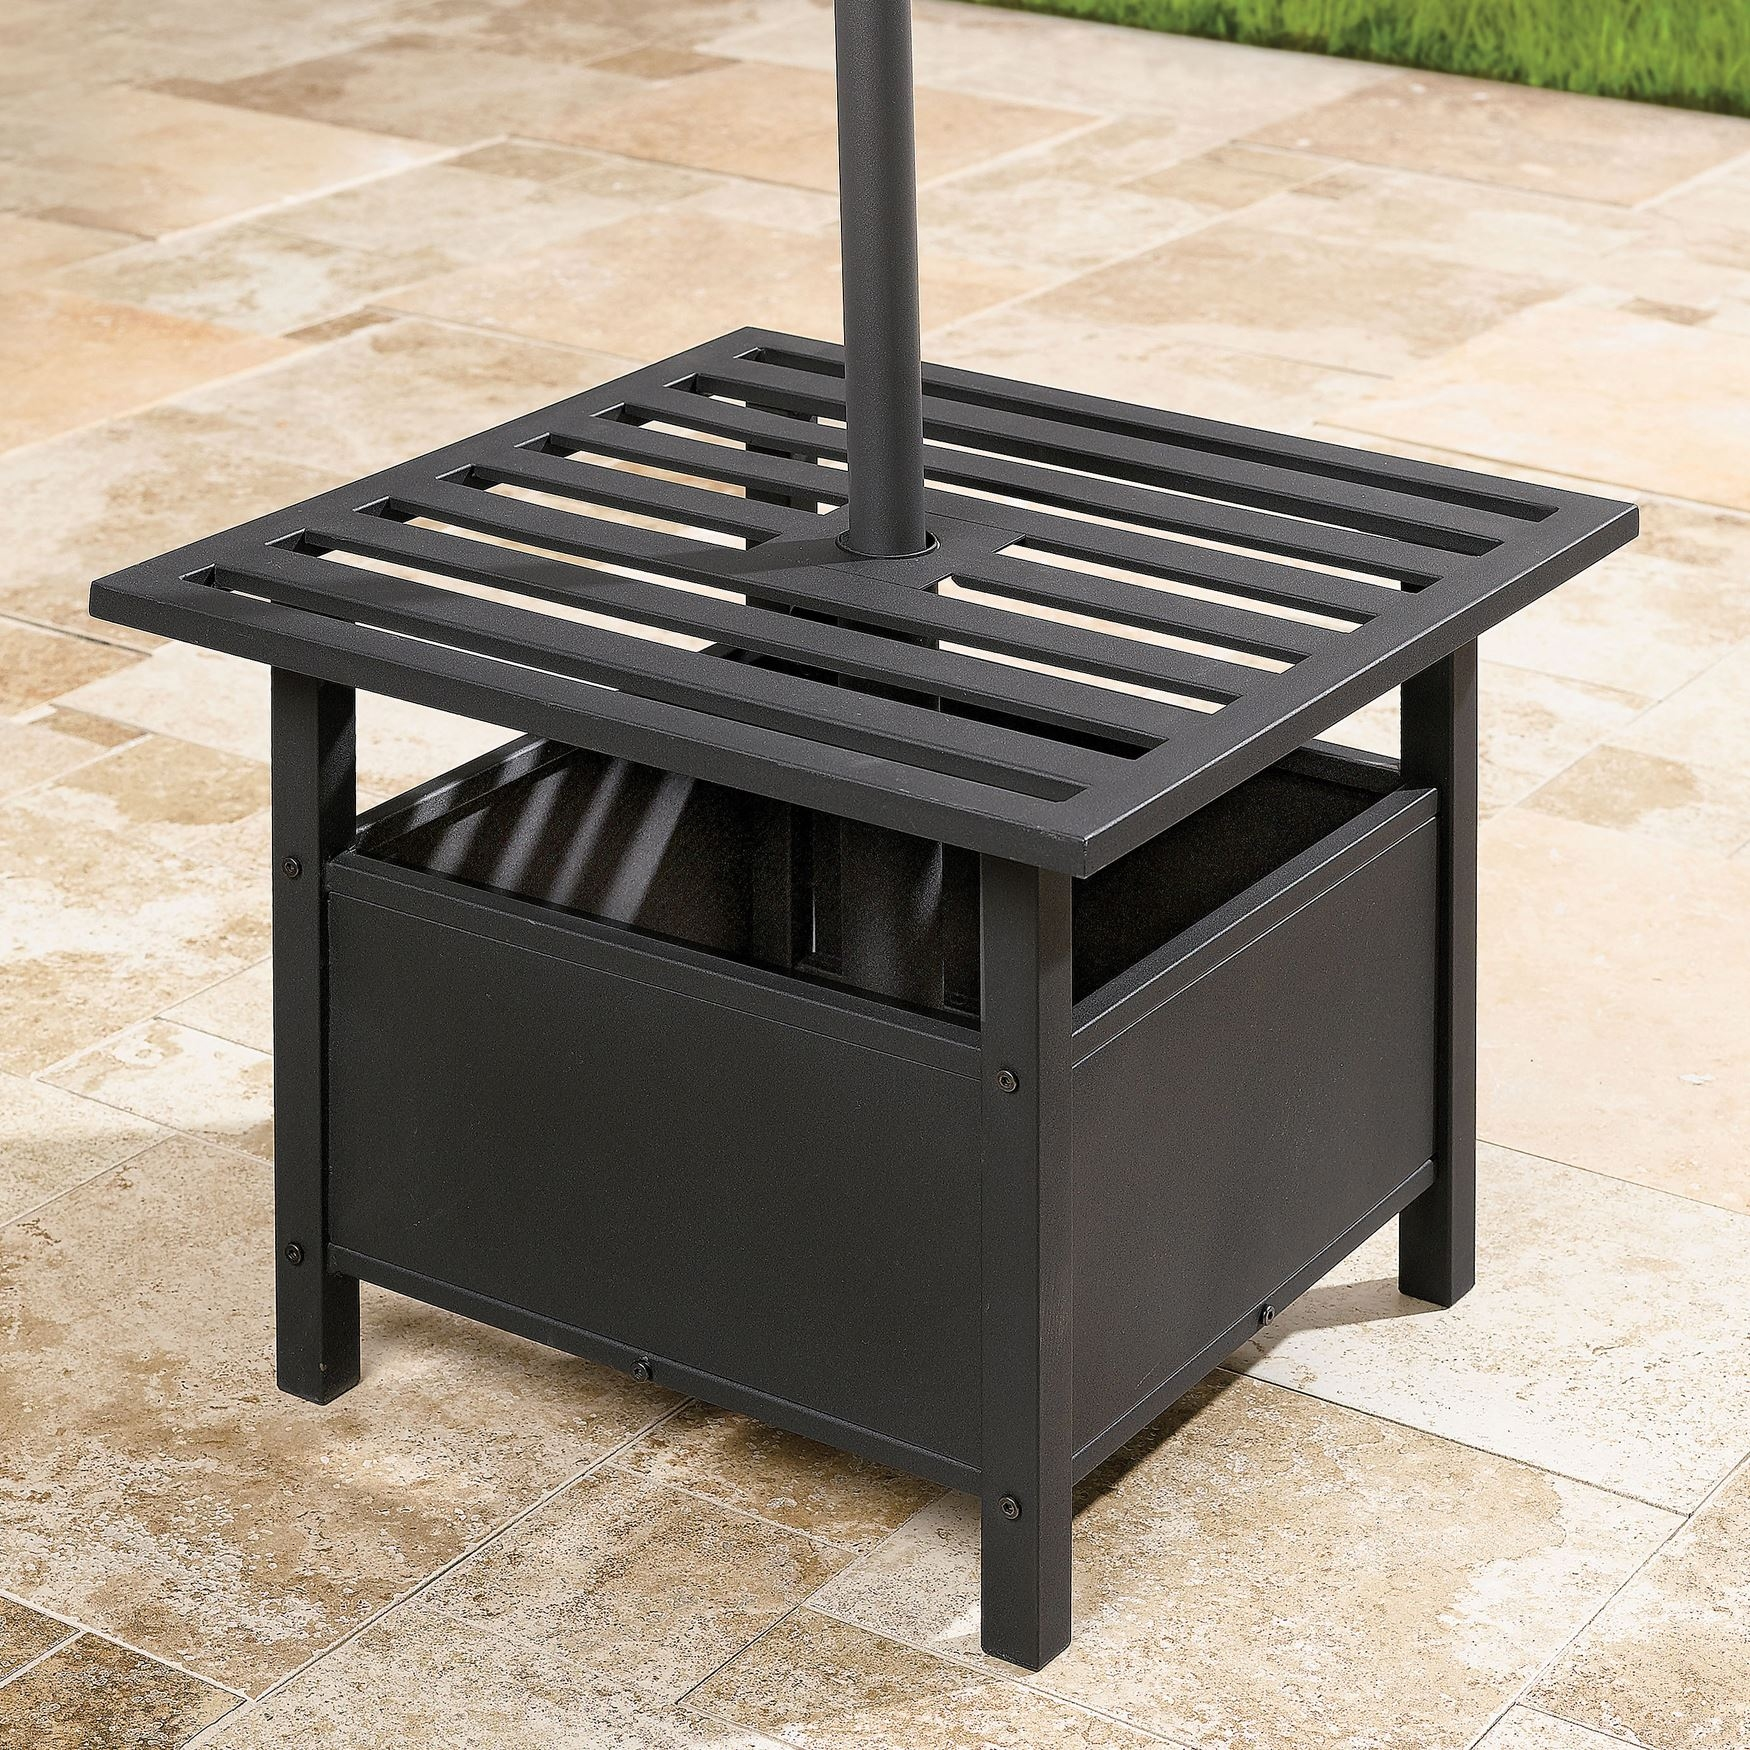 patio end table with umbrella hole stand side luxury umbrellas amp bases porch accent tables old antique trunks power lead hidden cat box piece dining set under home furnishings